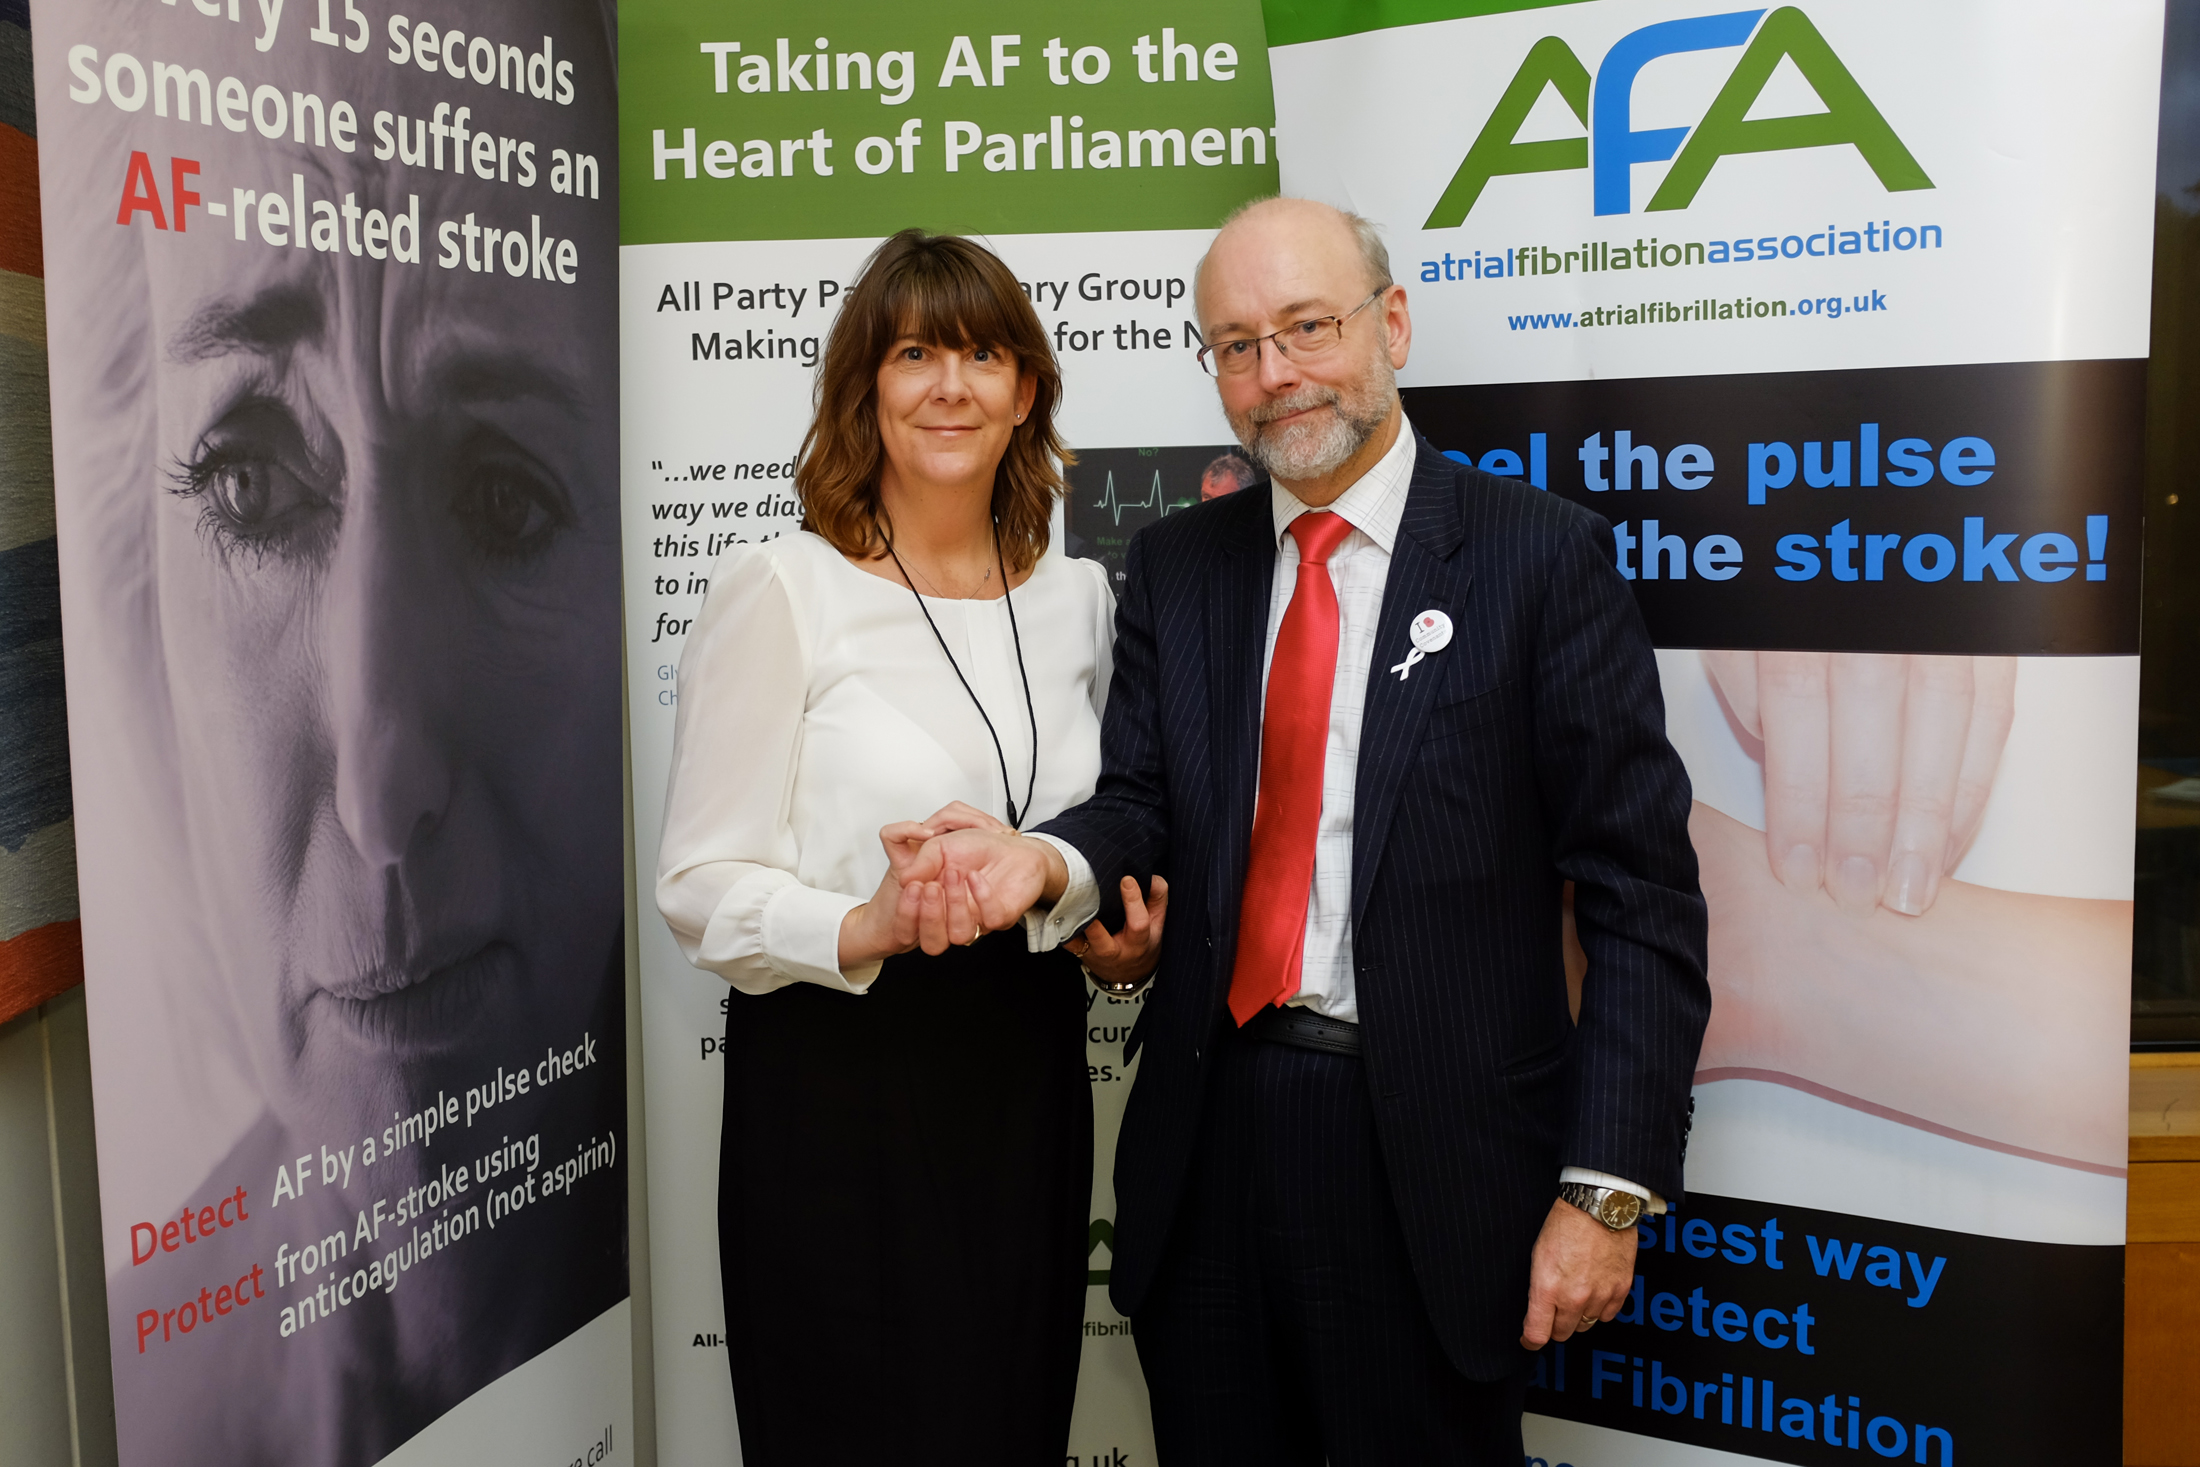 Alex calls for improved detection and treatment of atrial fibrillation to prevent 7,100 strokes a year